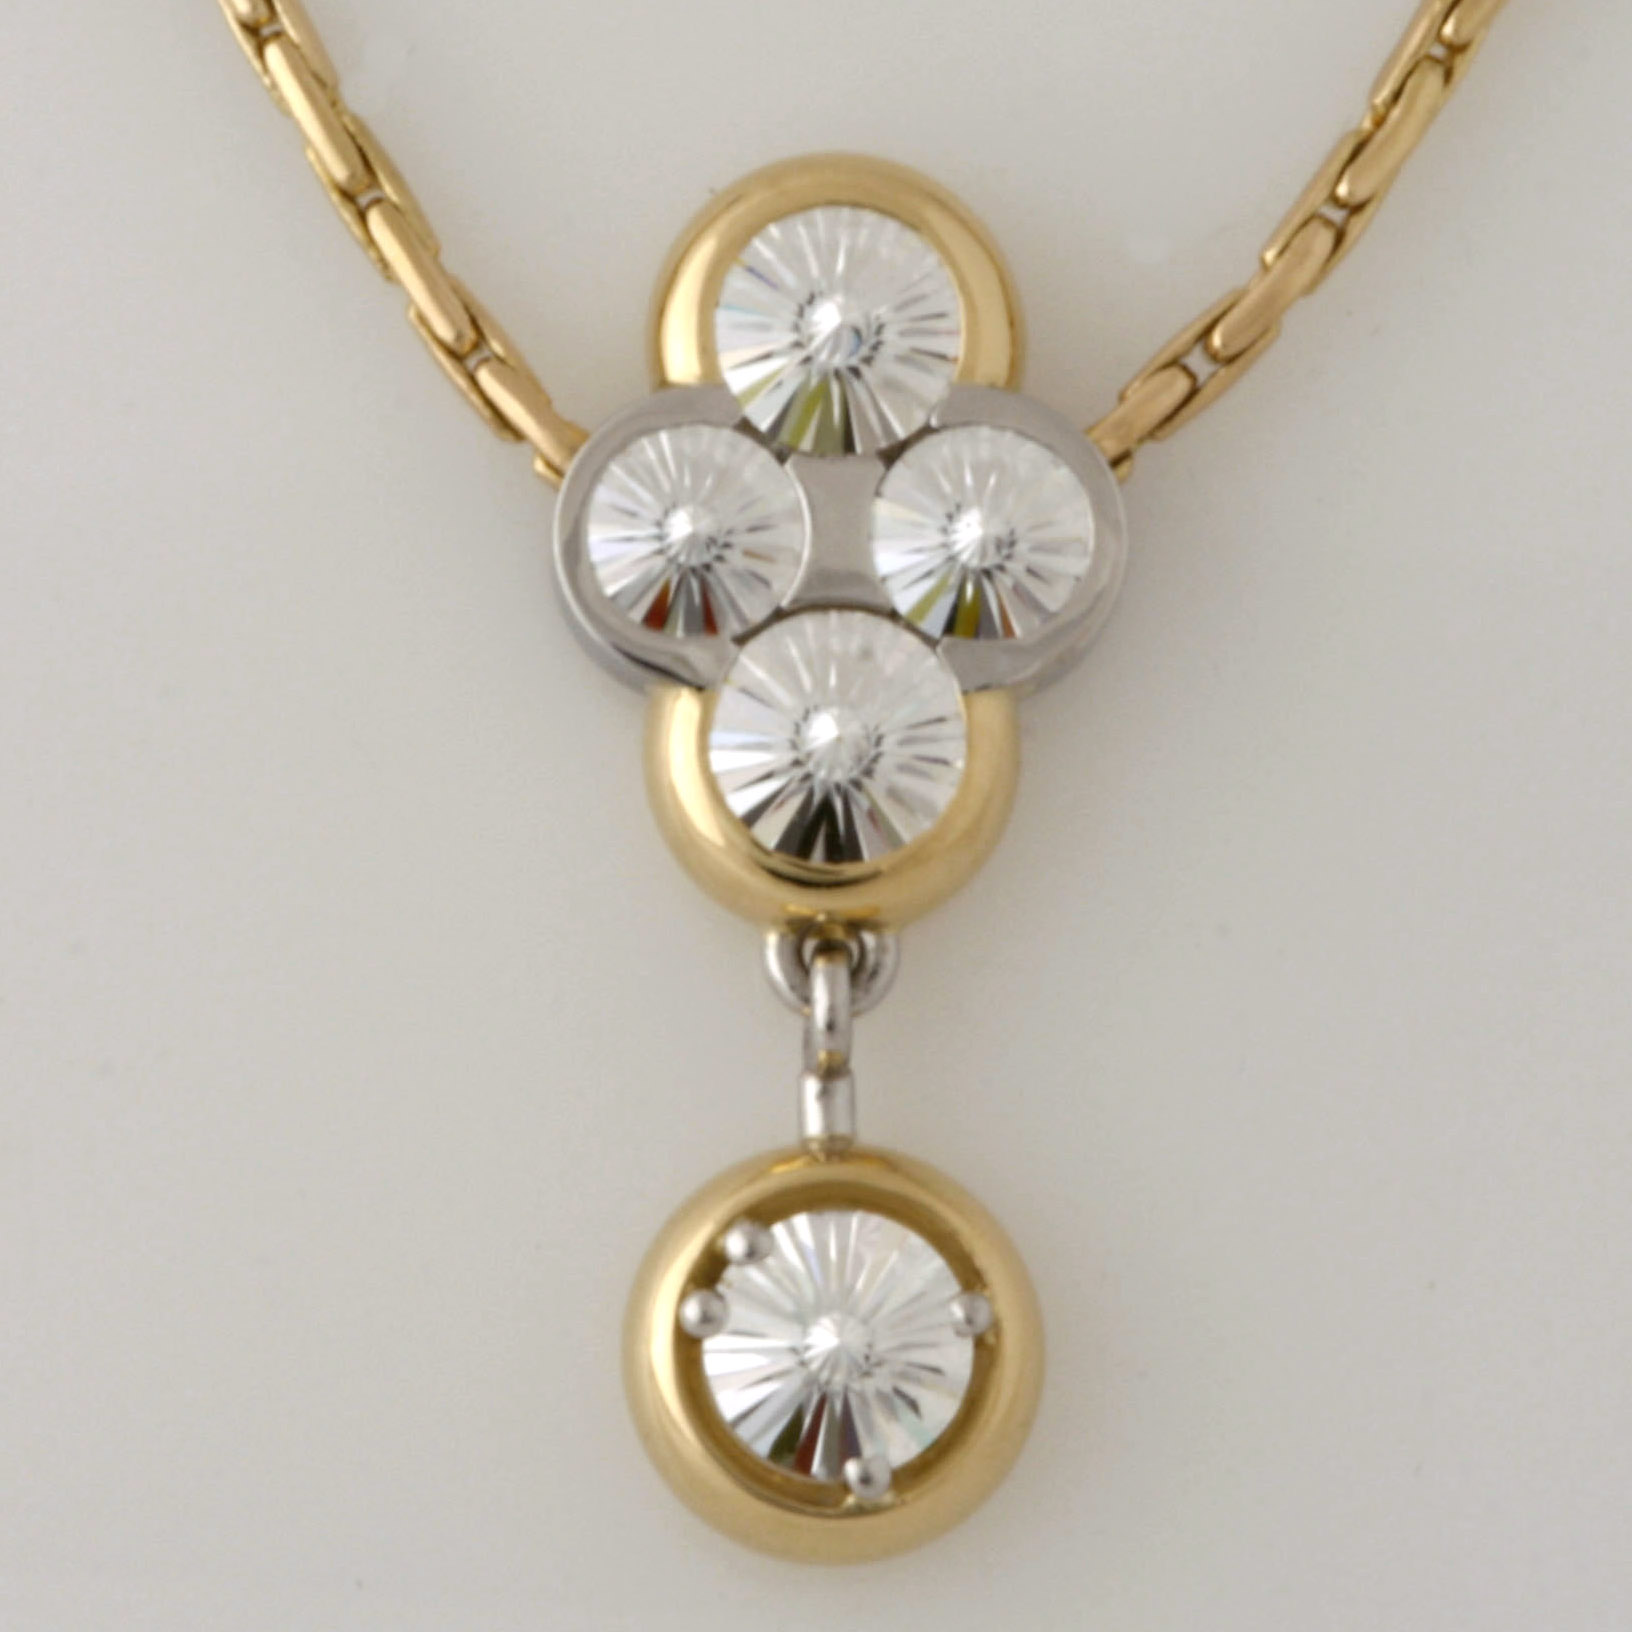 Handmade Ladies 18ct yellow gold and platinum 'Spirit' cut diamond pendant on an 18ct yellow gold chain